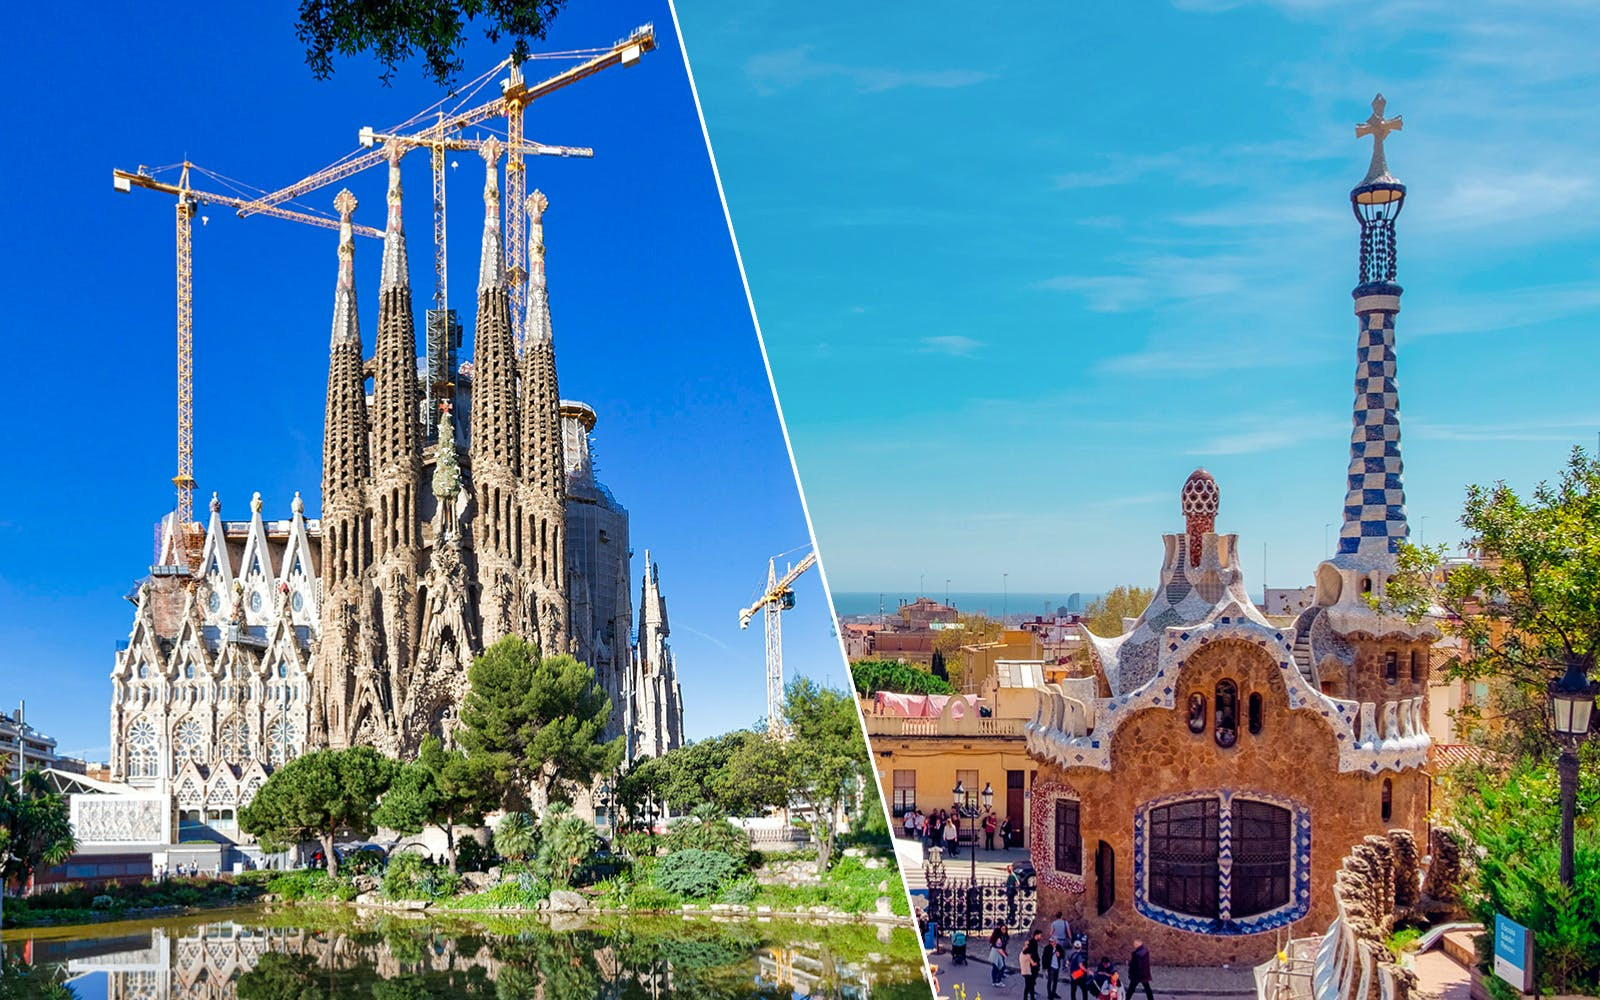 guided tour of sagrada familia and park güell with fast track entry access-1